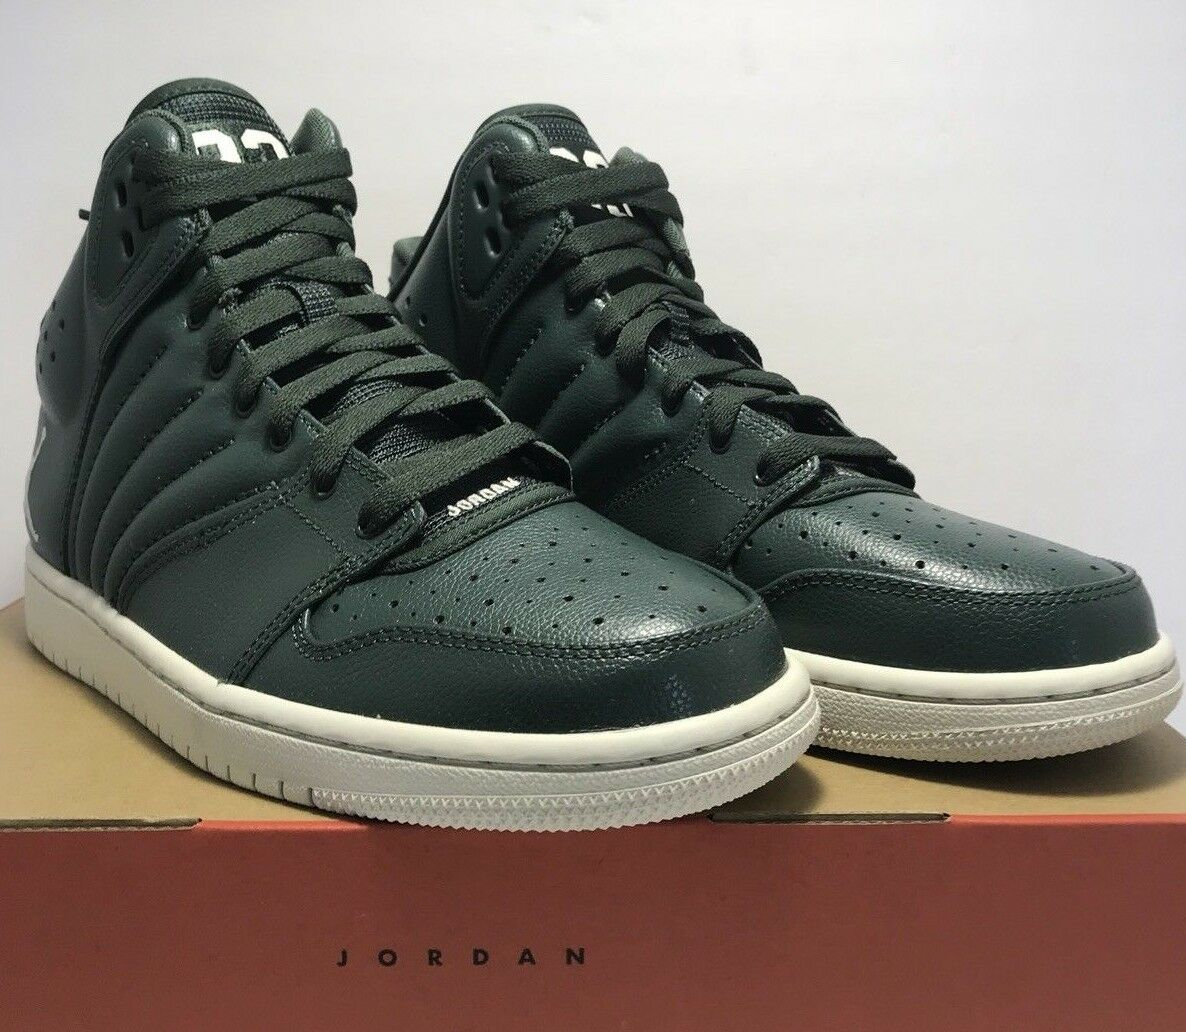 Nike Air Jordan 1 Mens Size 8.5 Flight 4 Grove Green Basketball shoes